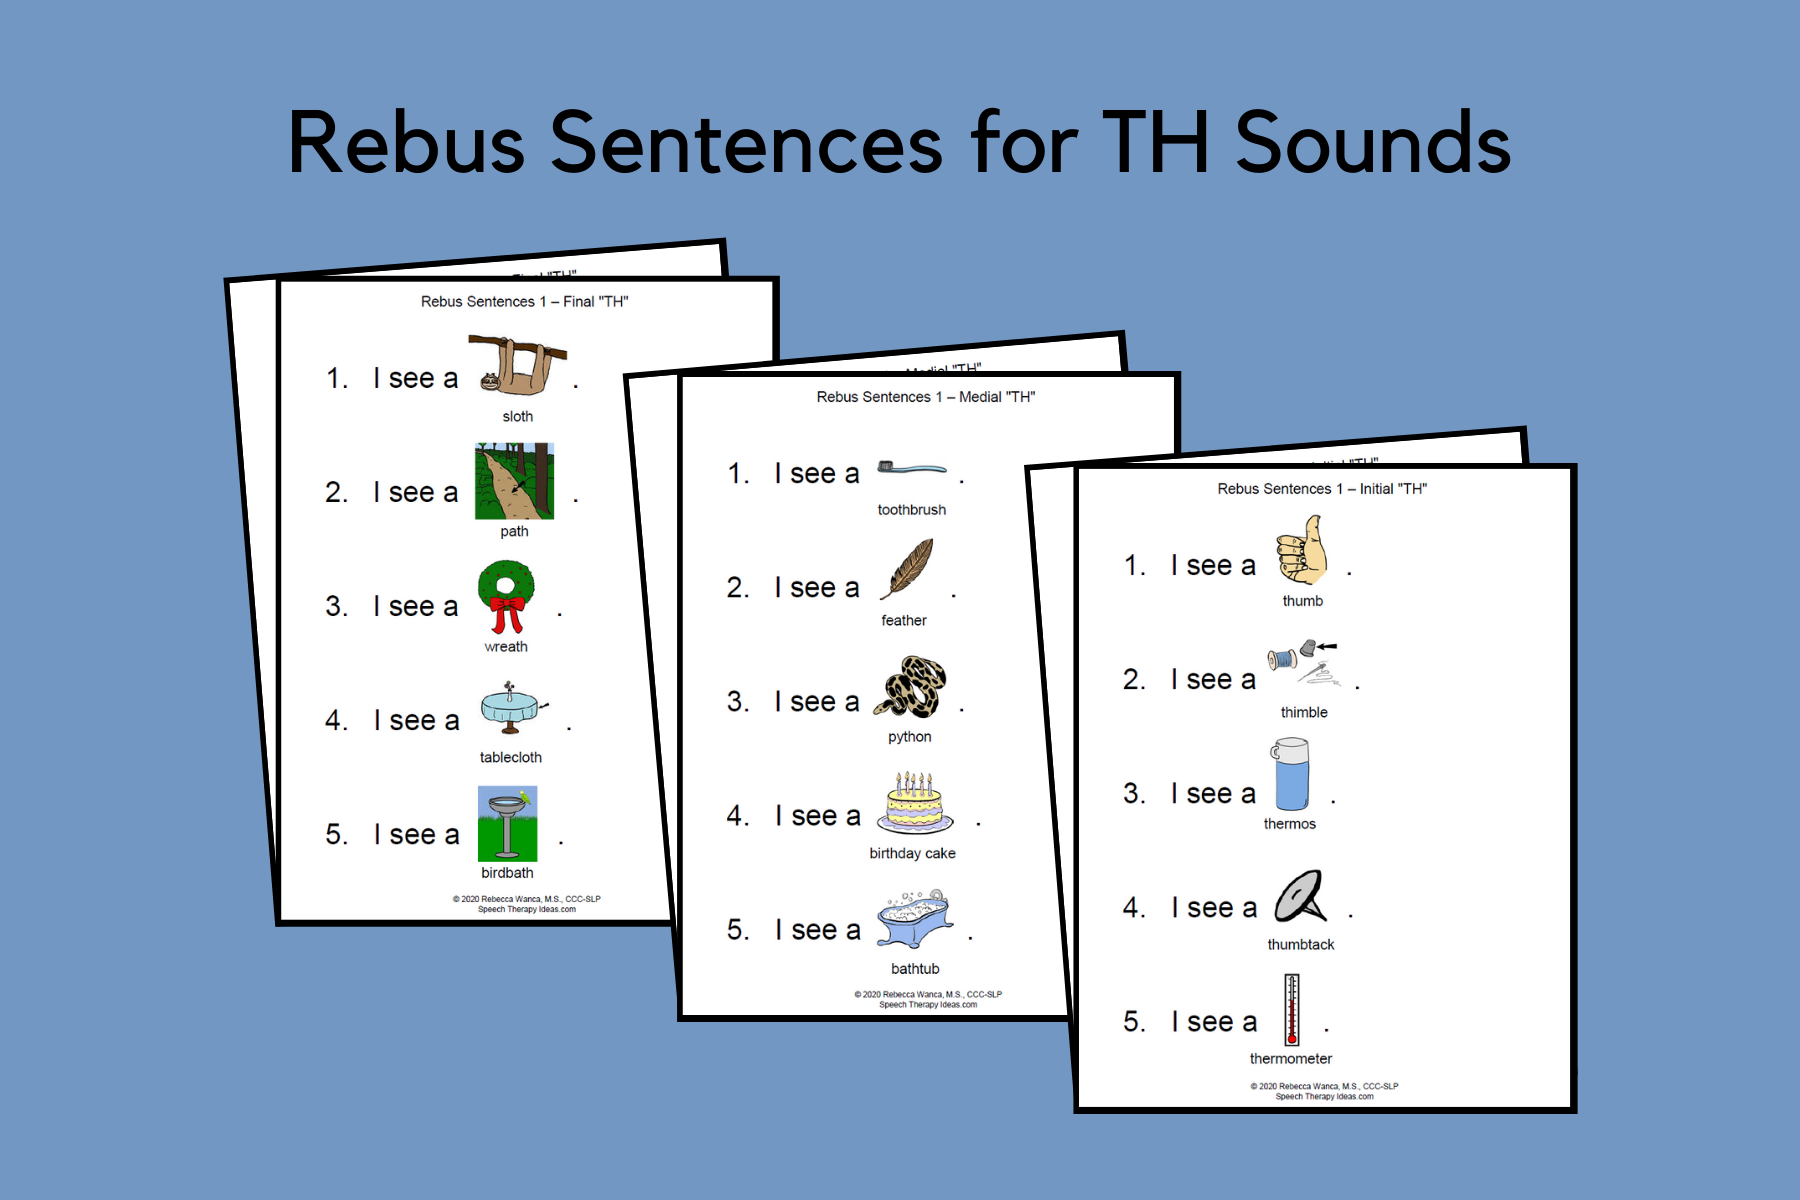 Rebus Sentences For TH Sound